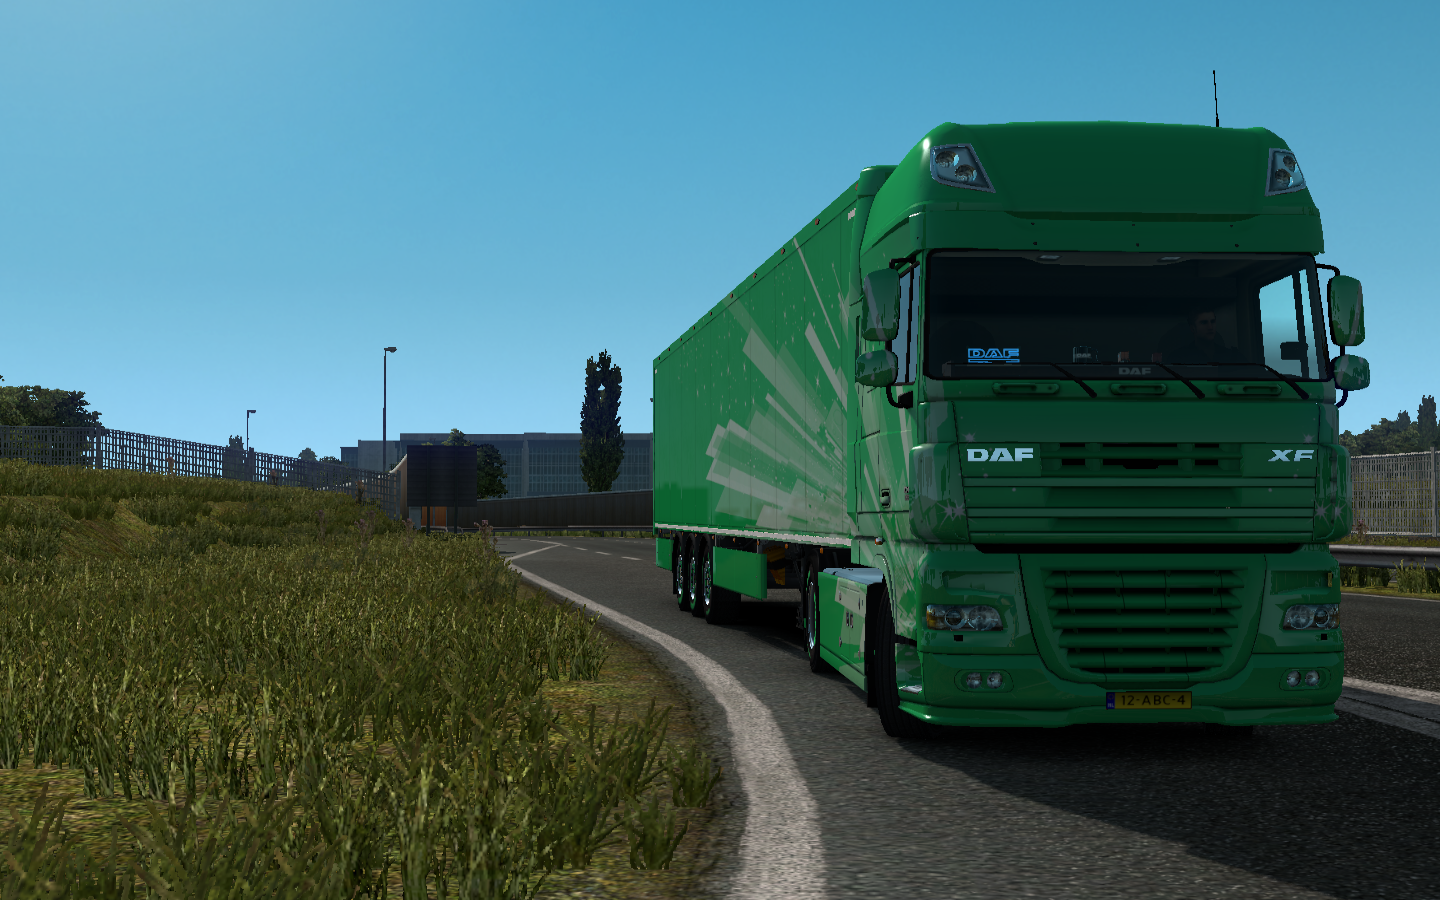 ets2_20190130_204117_00.png